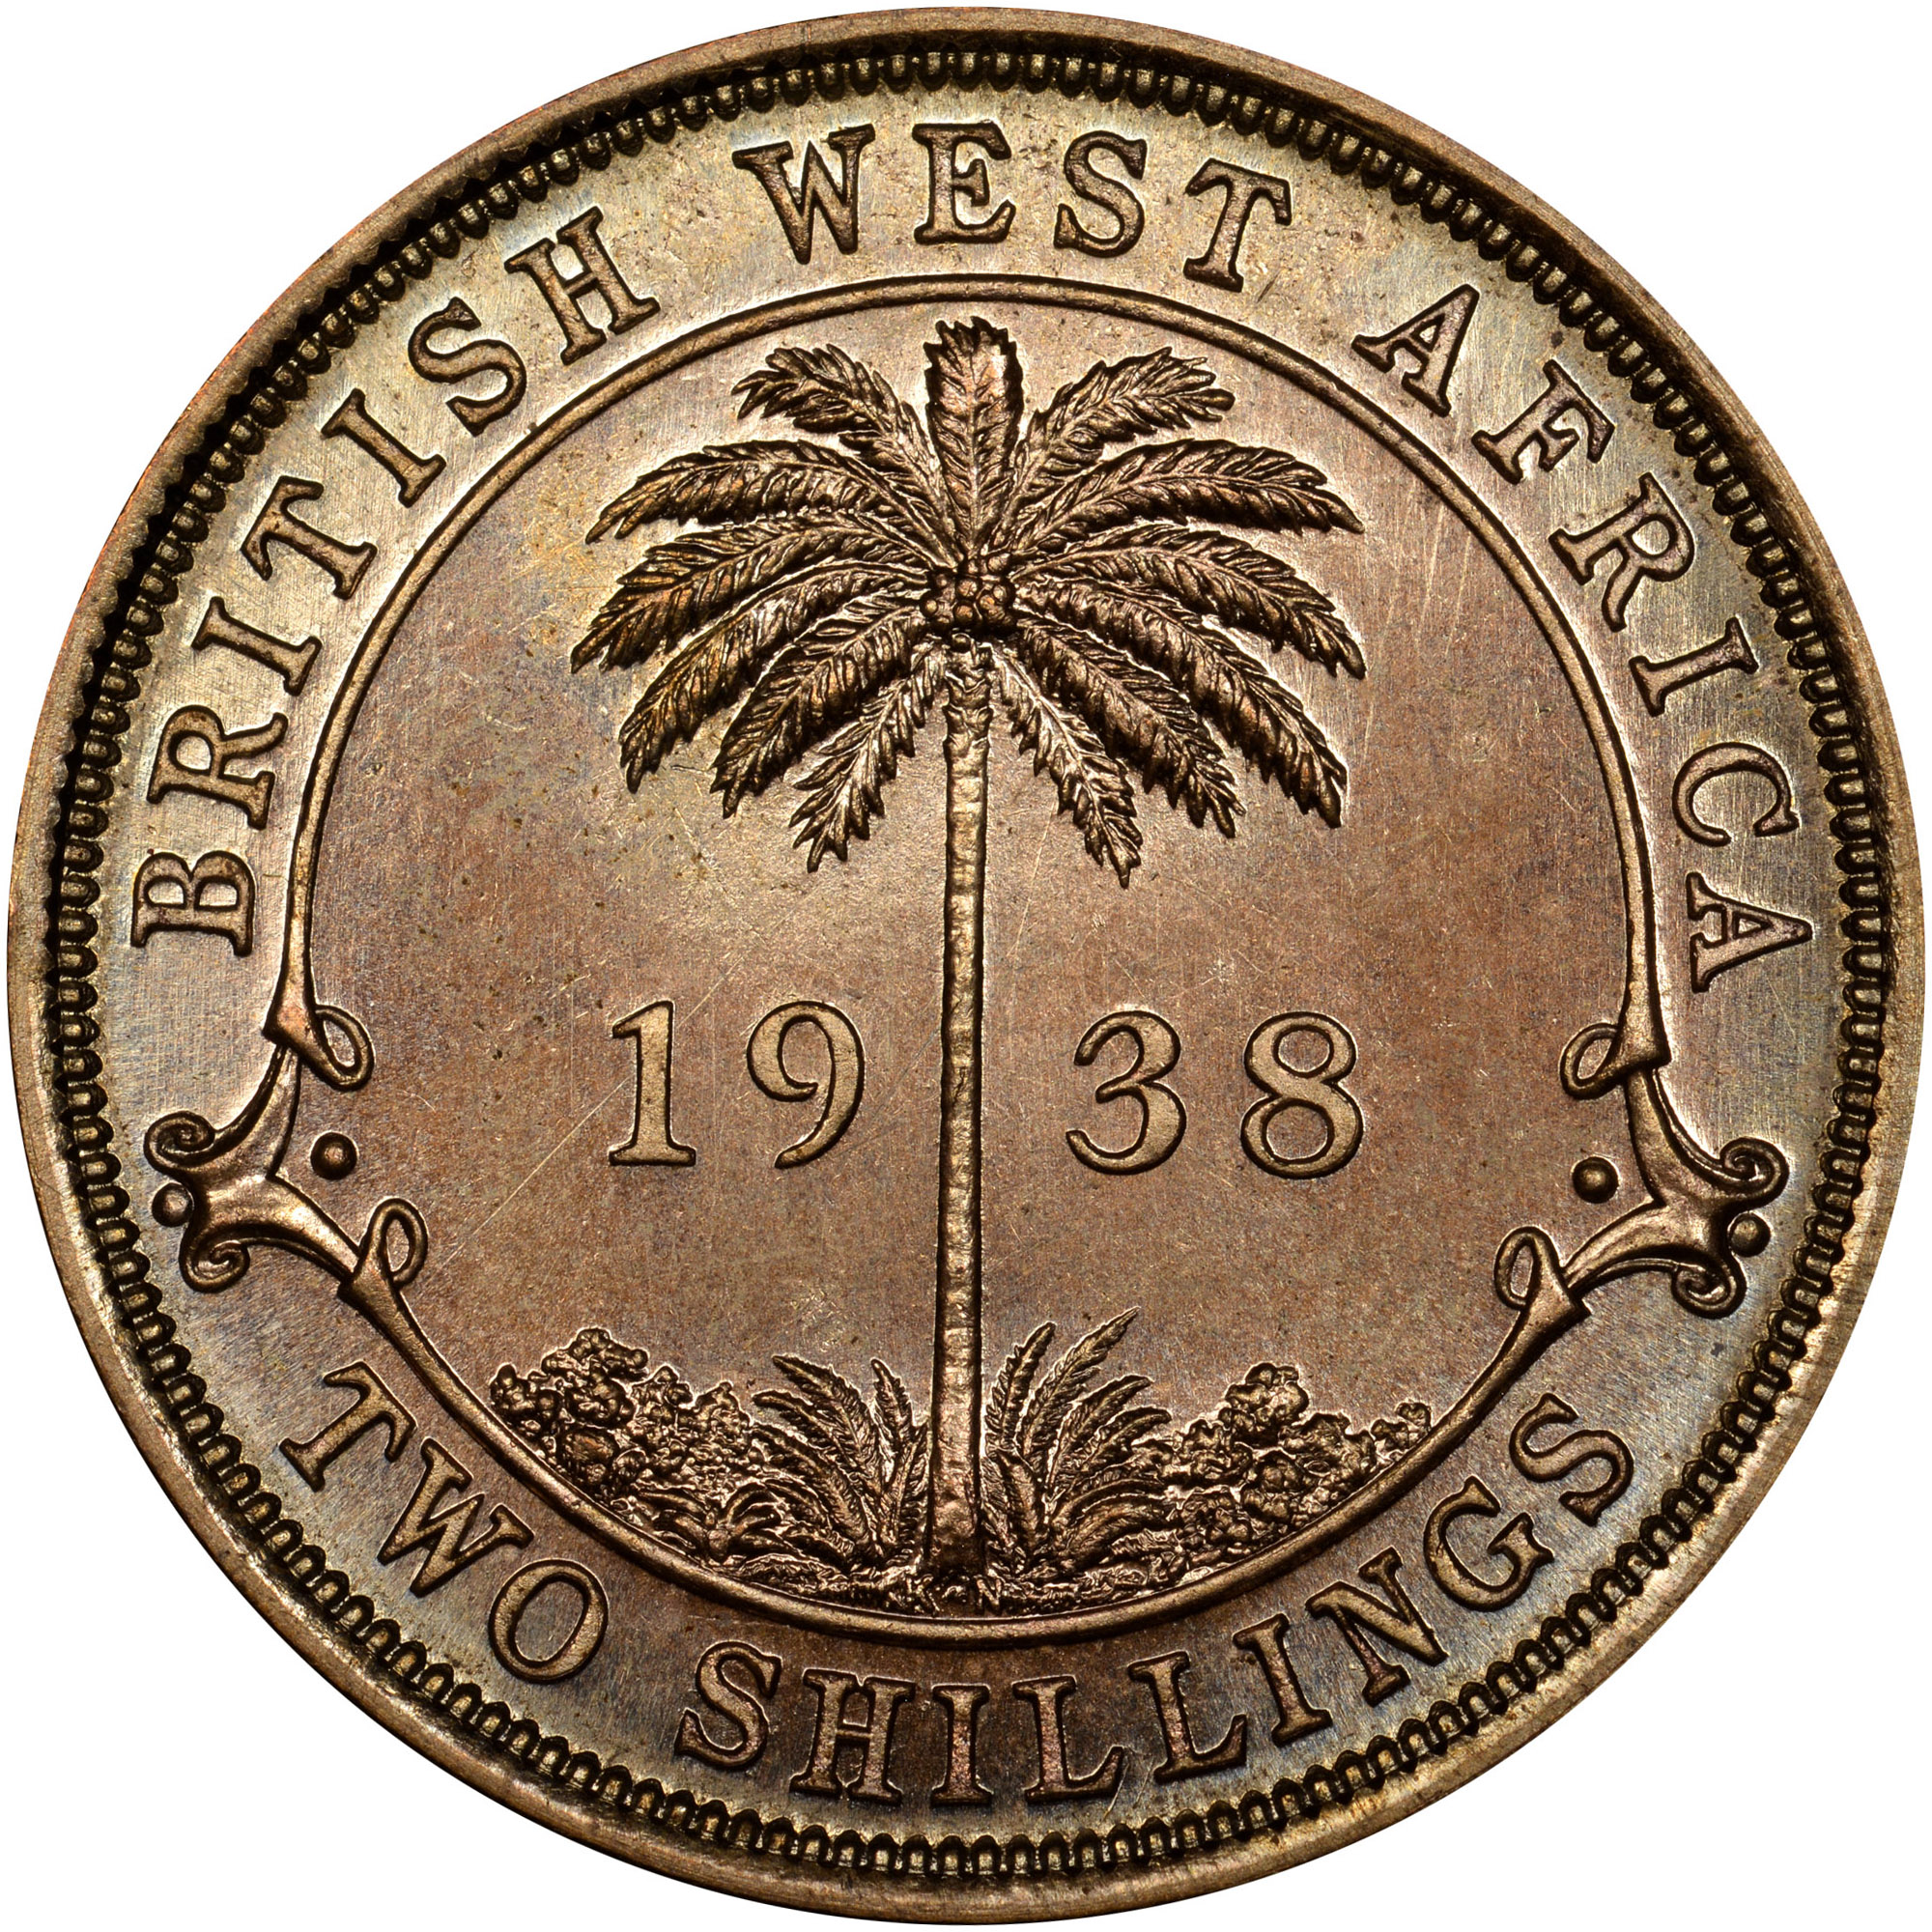 British West Africa 2 Shillings reverse